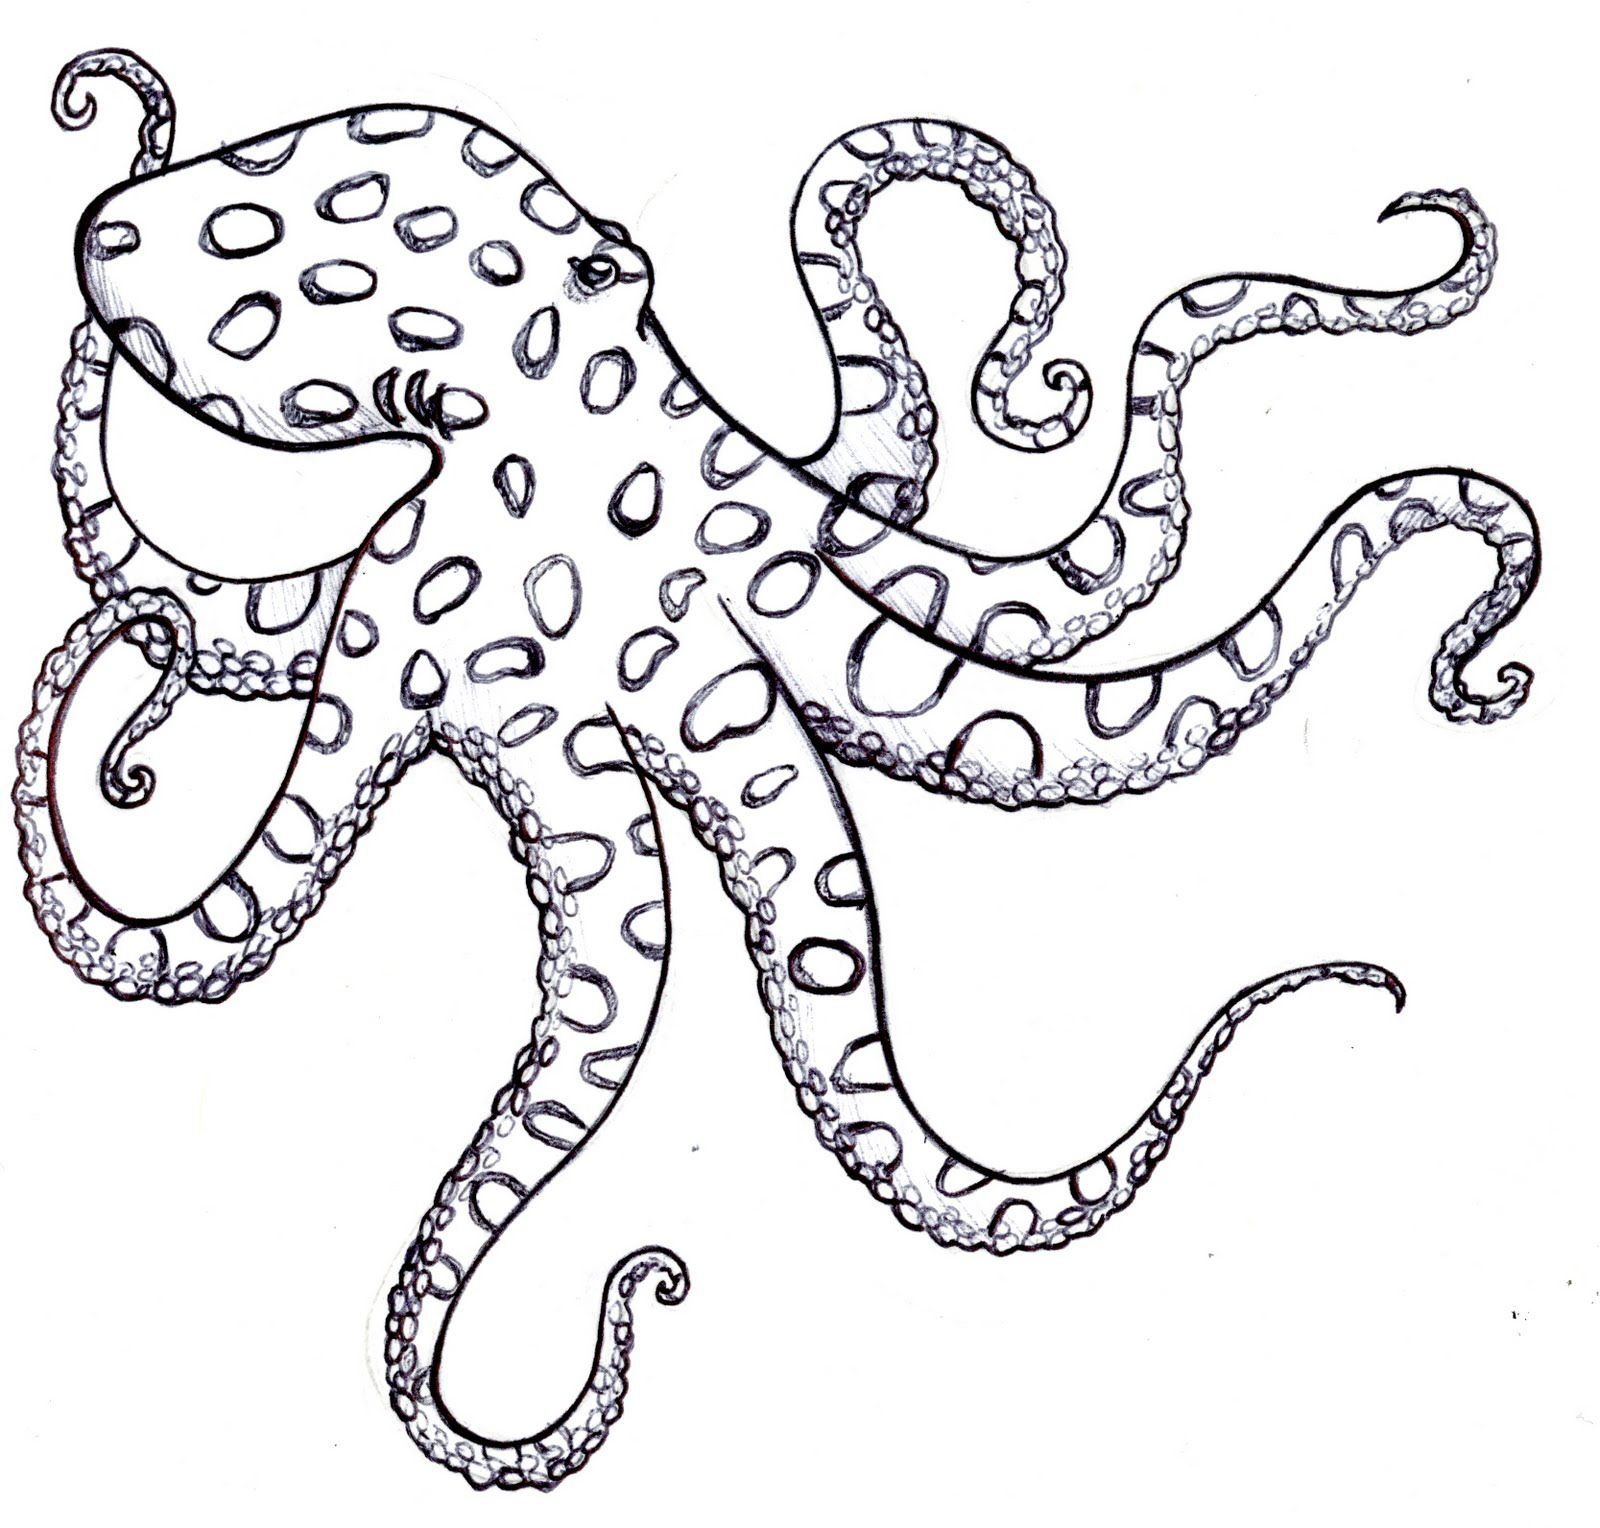 black and white octopus drawing Google Search Octopus